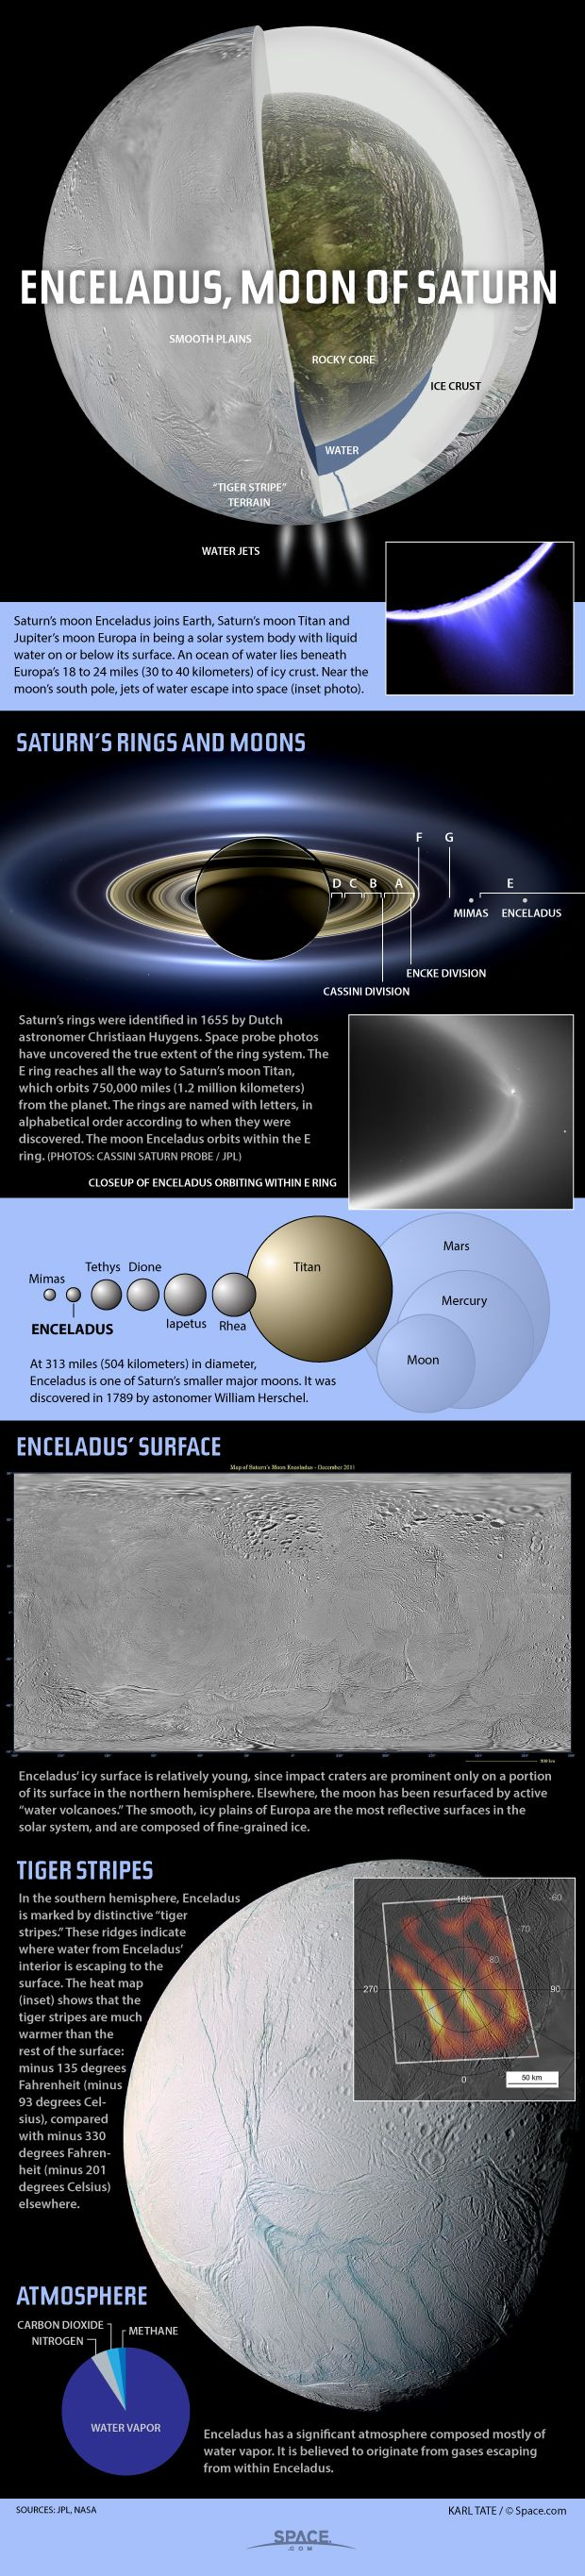 Enceladus, Moon of Saturn... Will Ocean Discovery On Enceladus Spur Life-Hunting Missions to Icy Moons of Saturn, Jupiter? | Space.com